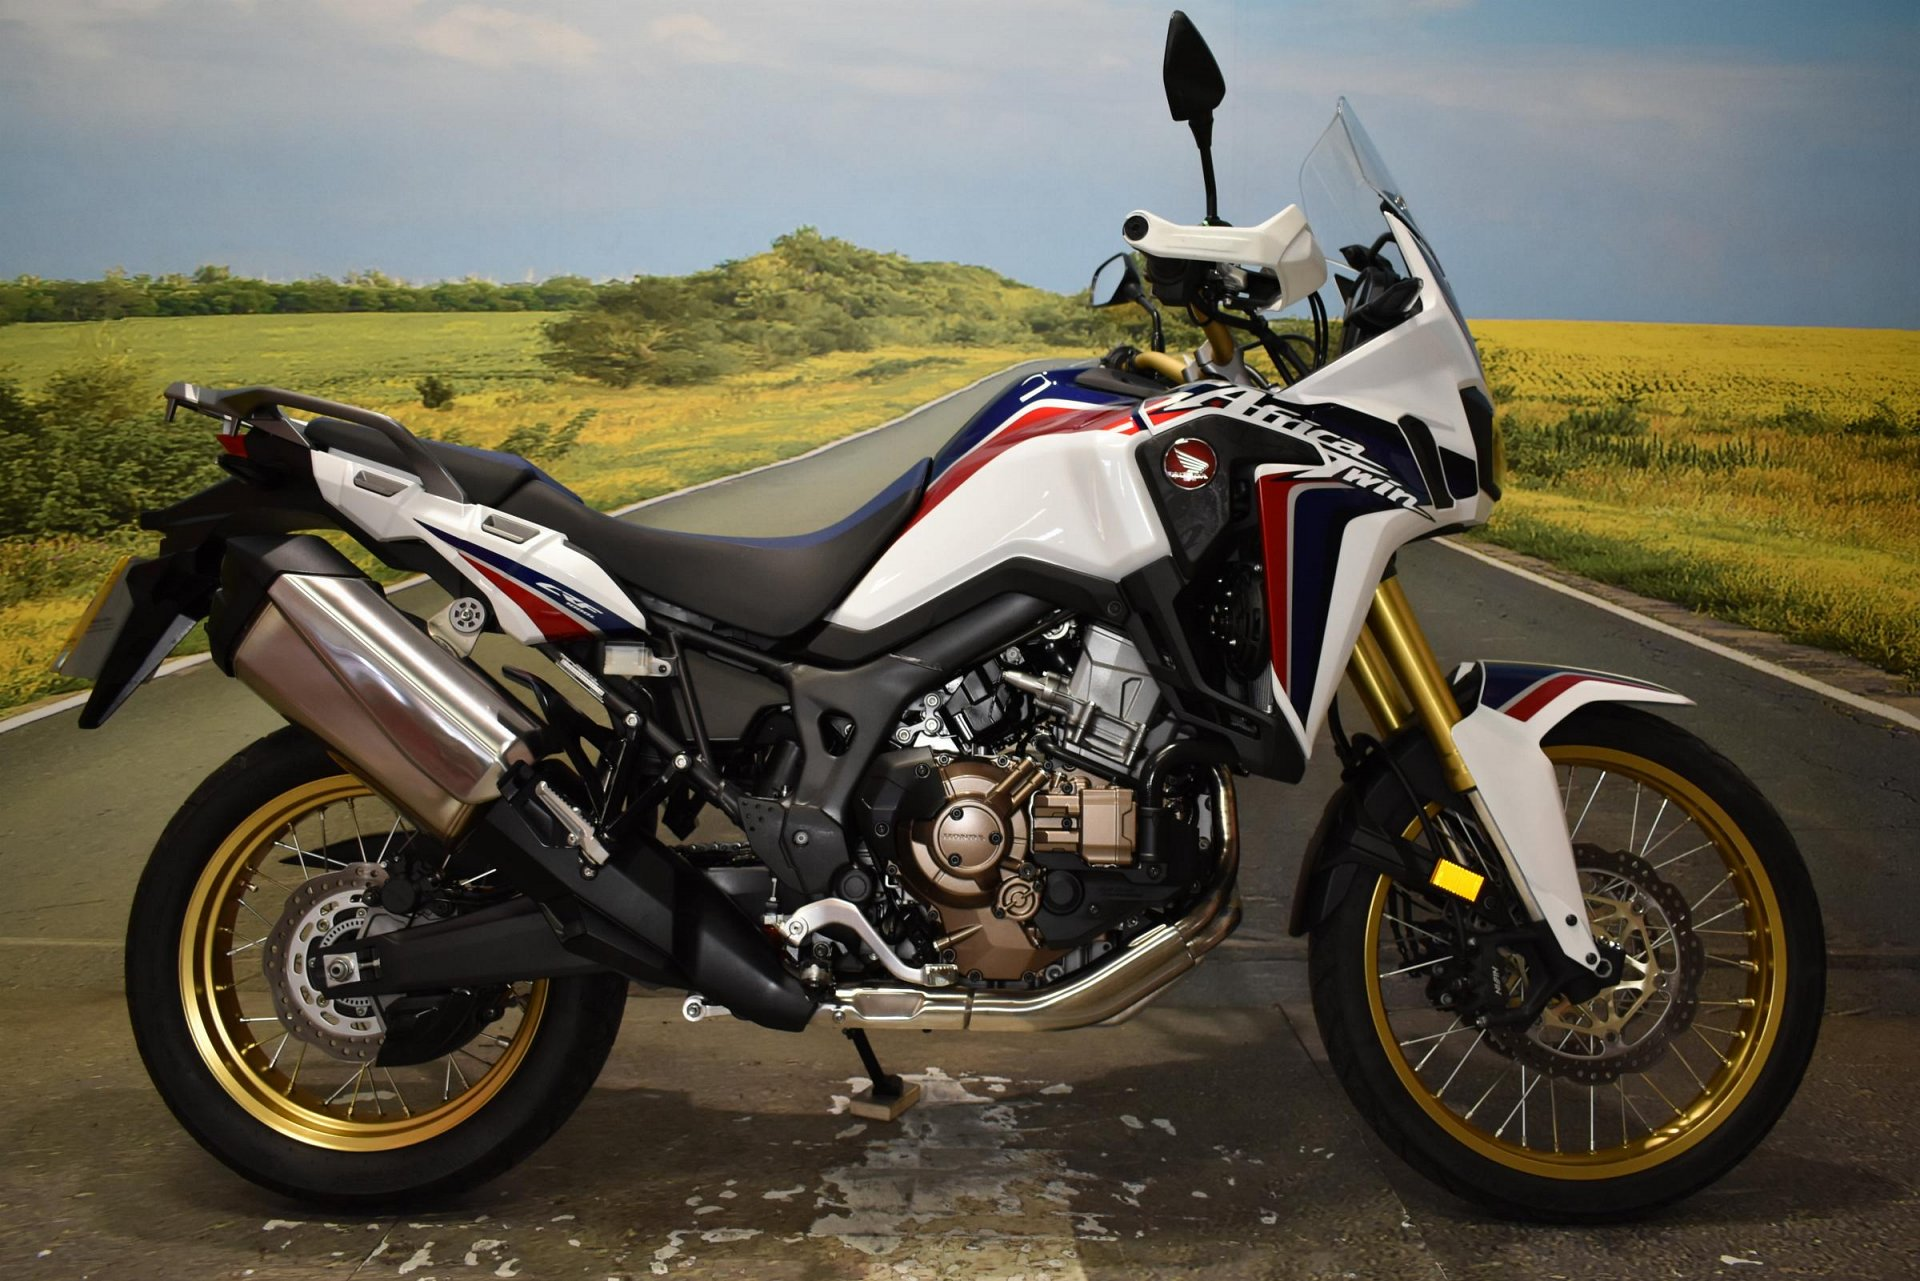 2017 Honda CRF 1000 D Africa Twin for sale in Derbyshire